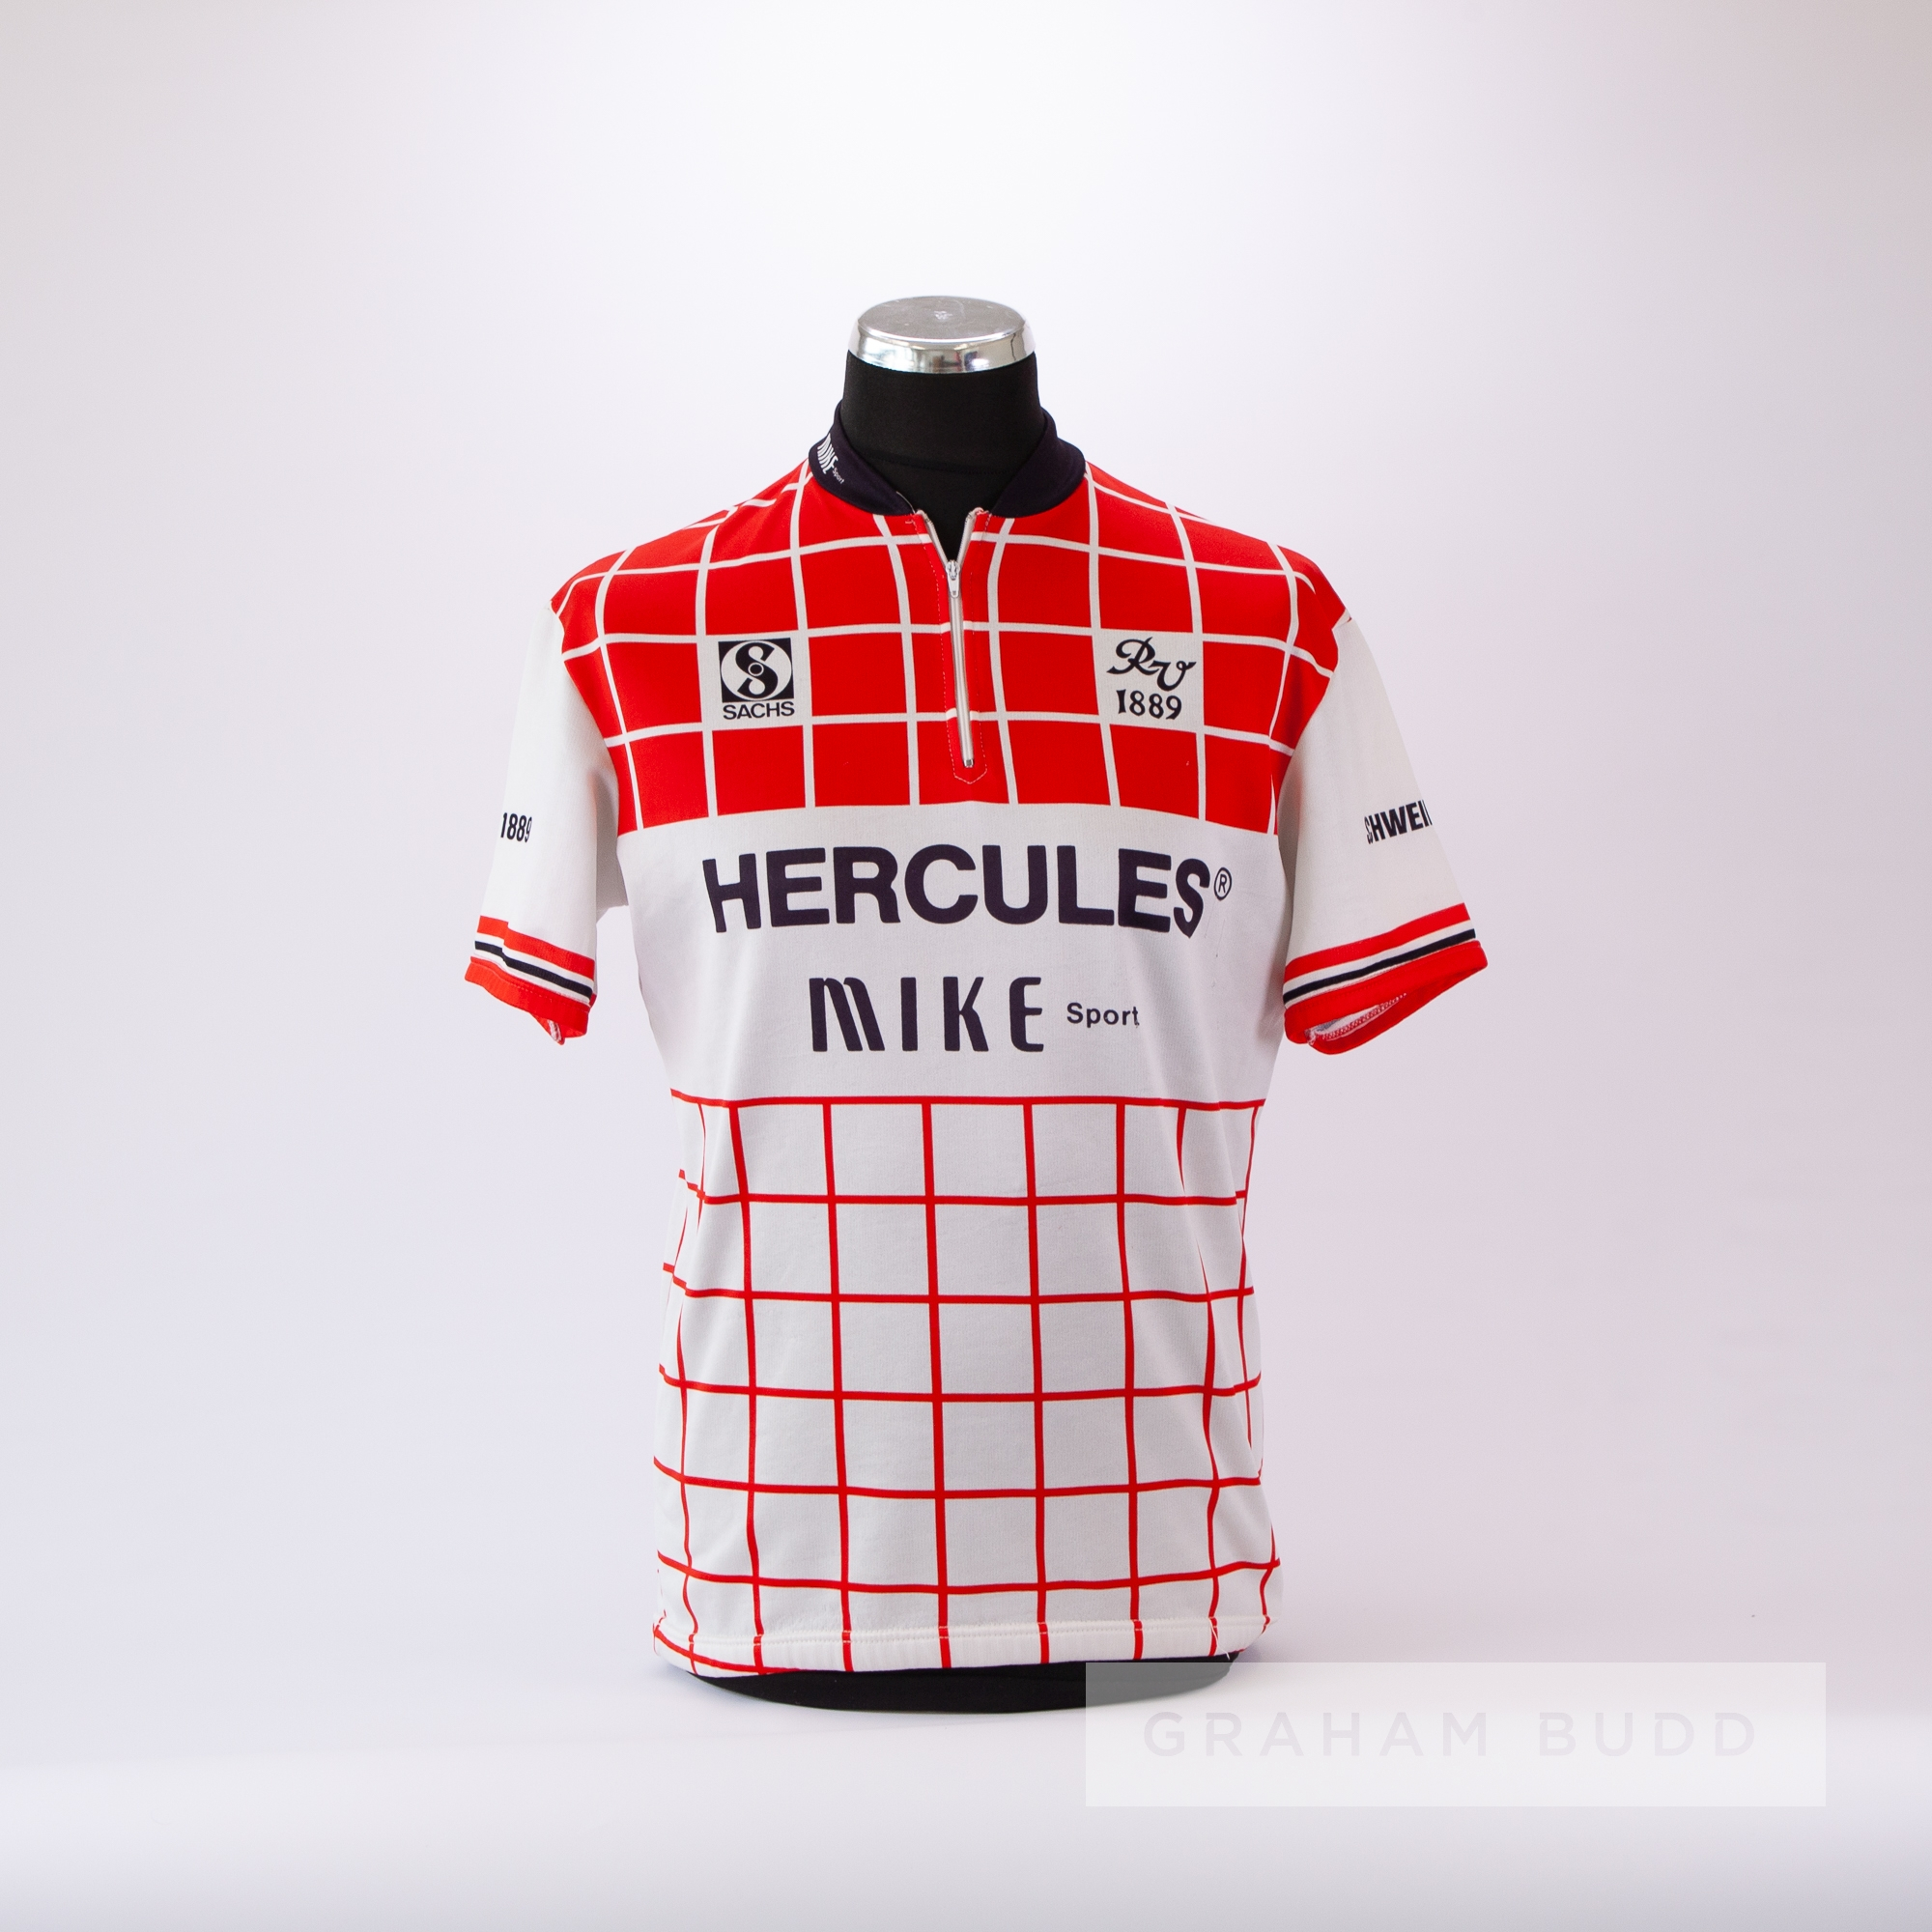 1989 red, white and black Hercules Sachs Cycling team race jersey, scarce, polyester short-sleeved - Image 3 of 4